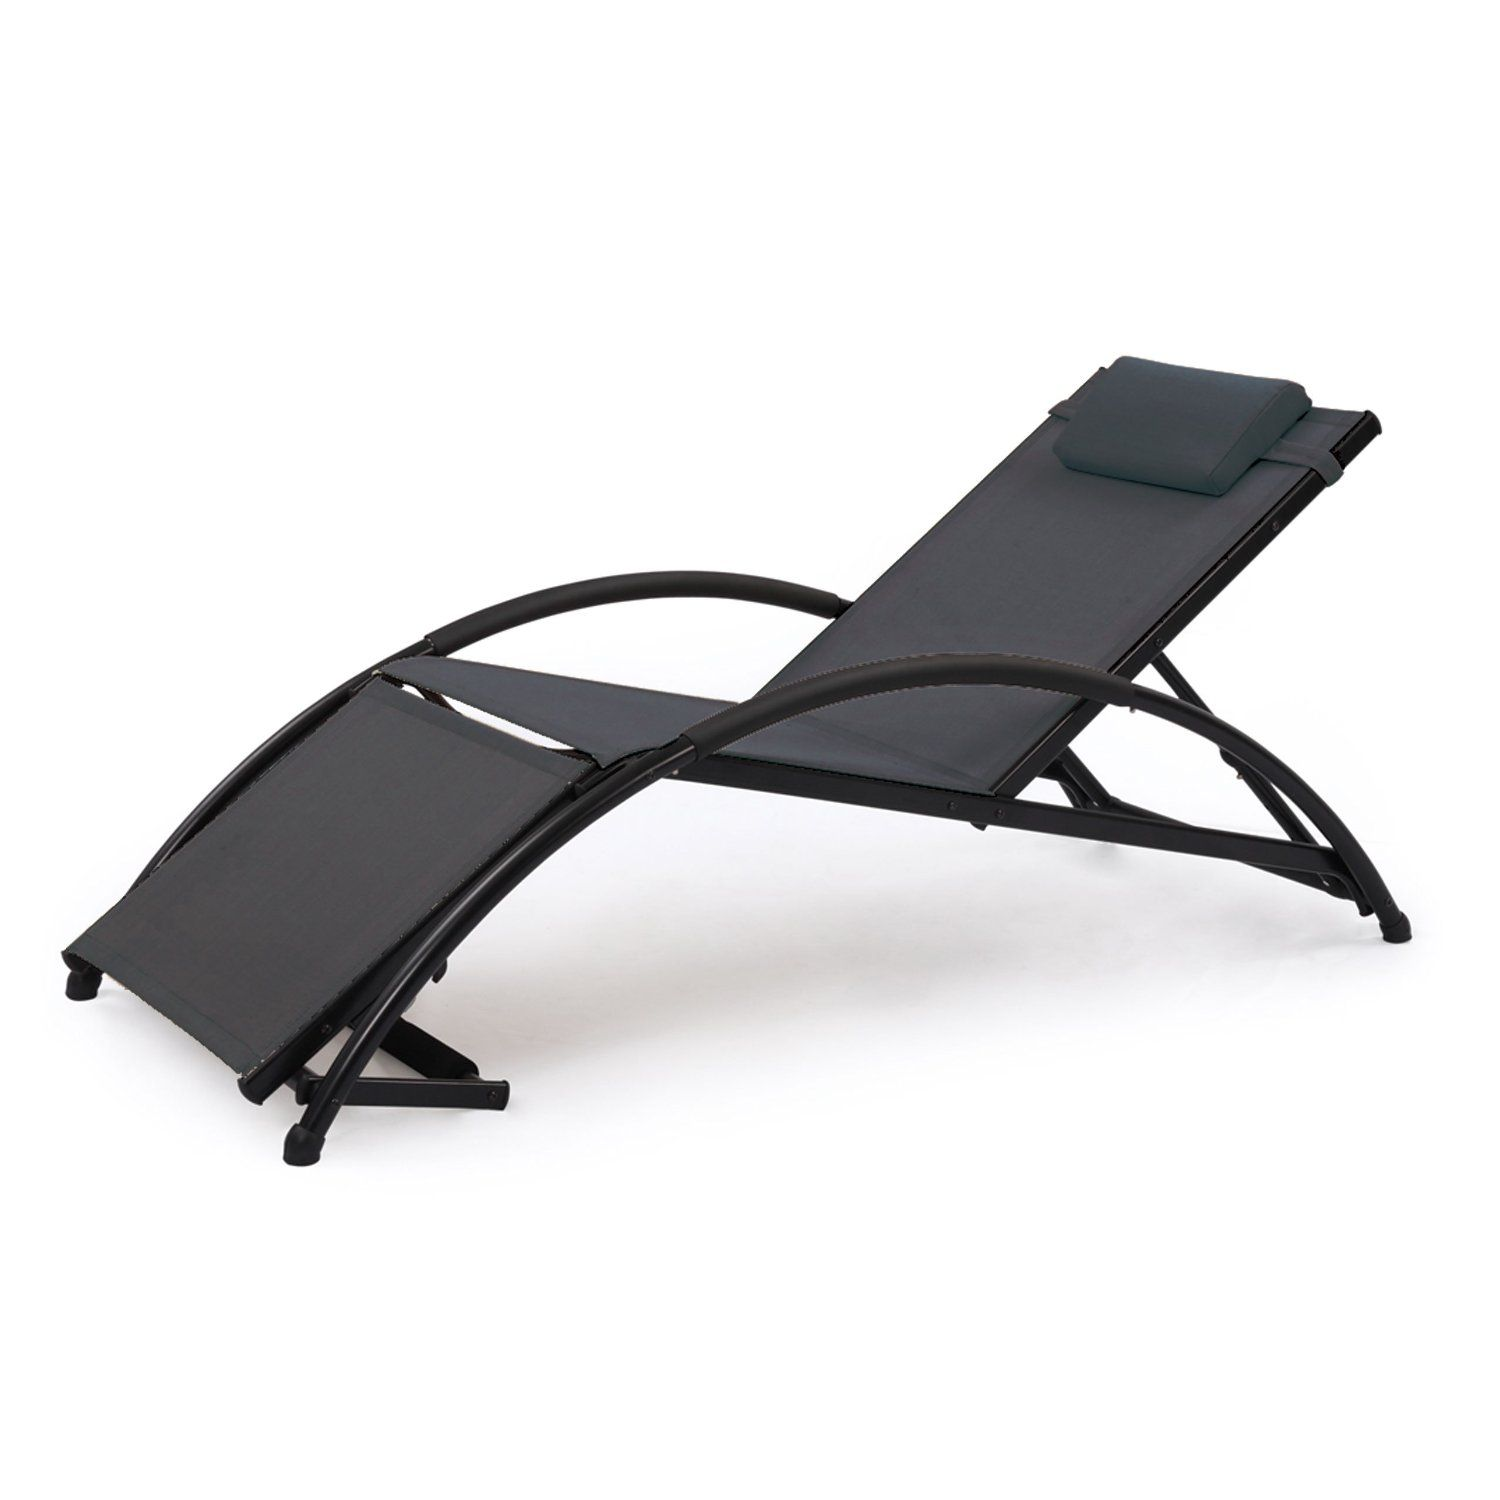 Jarder Adjustable Sun Lounger - Garden, Patio, Poolside (Black ... on chaise sofa sleeper, chaise recliner chair, chaise furniture,